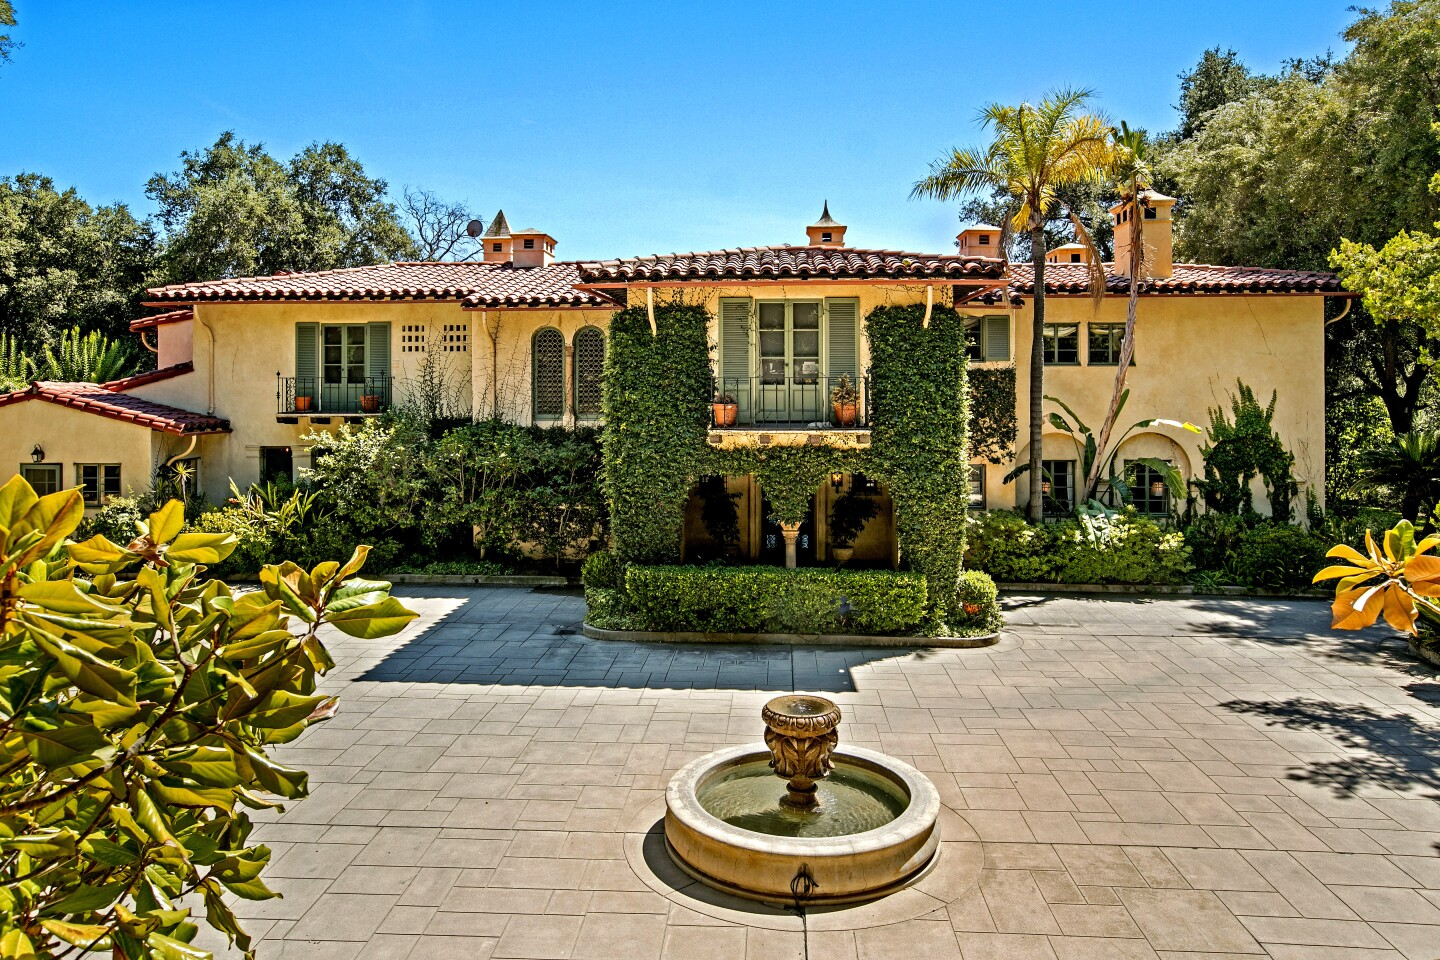 The Spanish Colonial-style house was designed in 1928 by architect-to-the-stars Paul Williams.